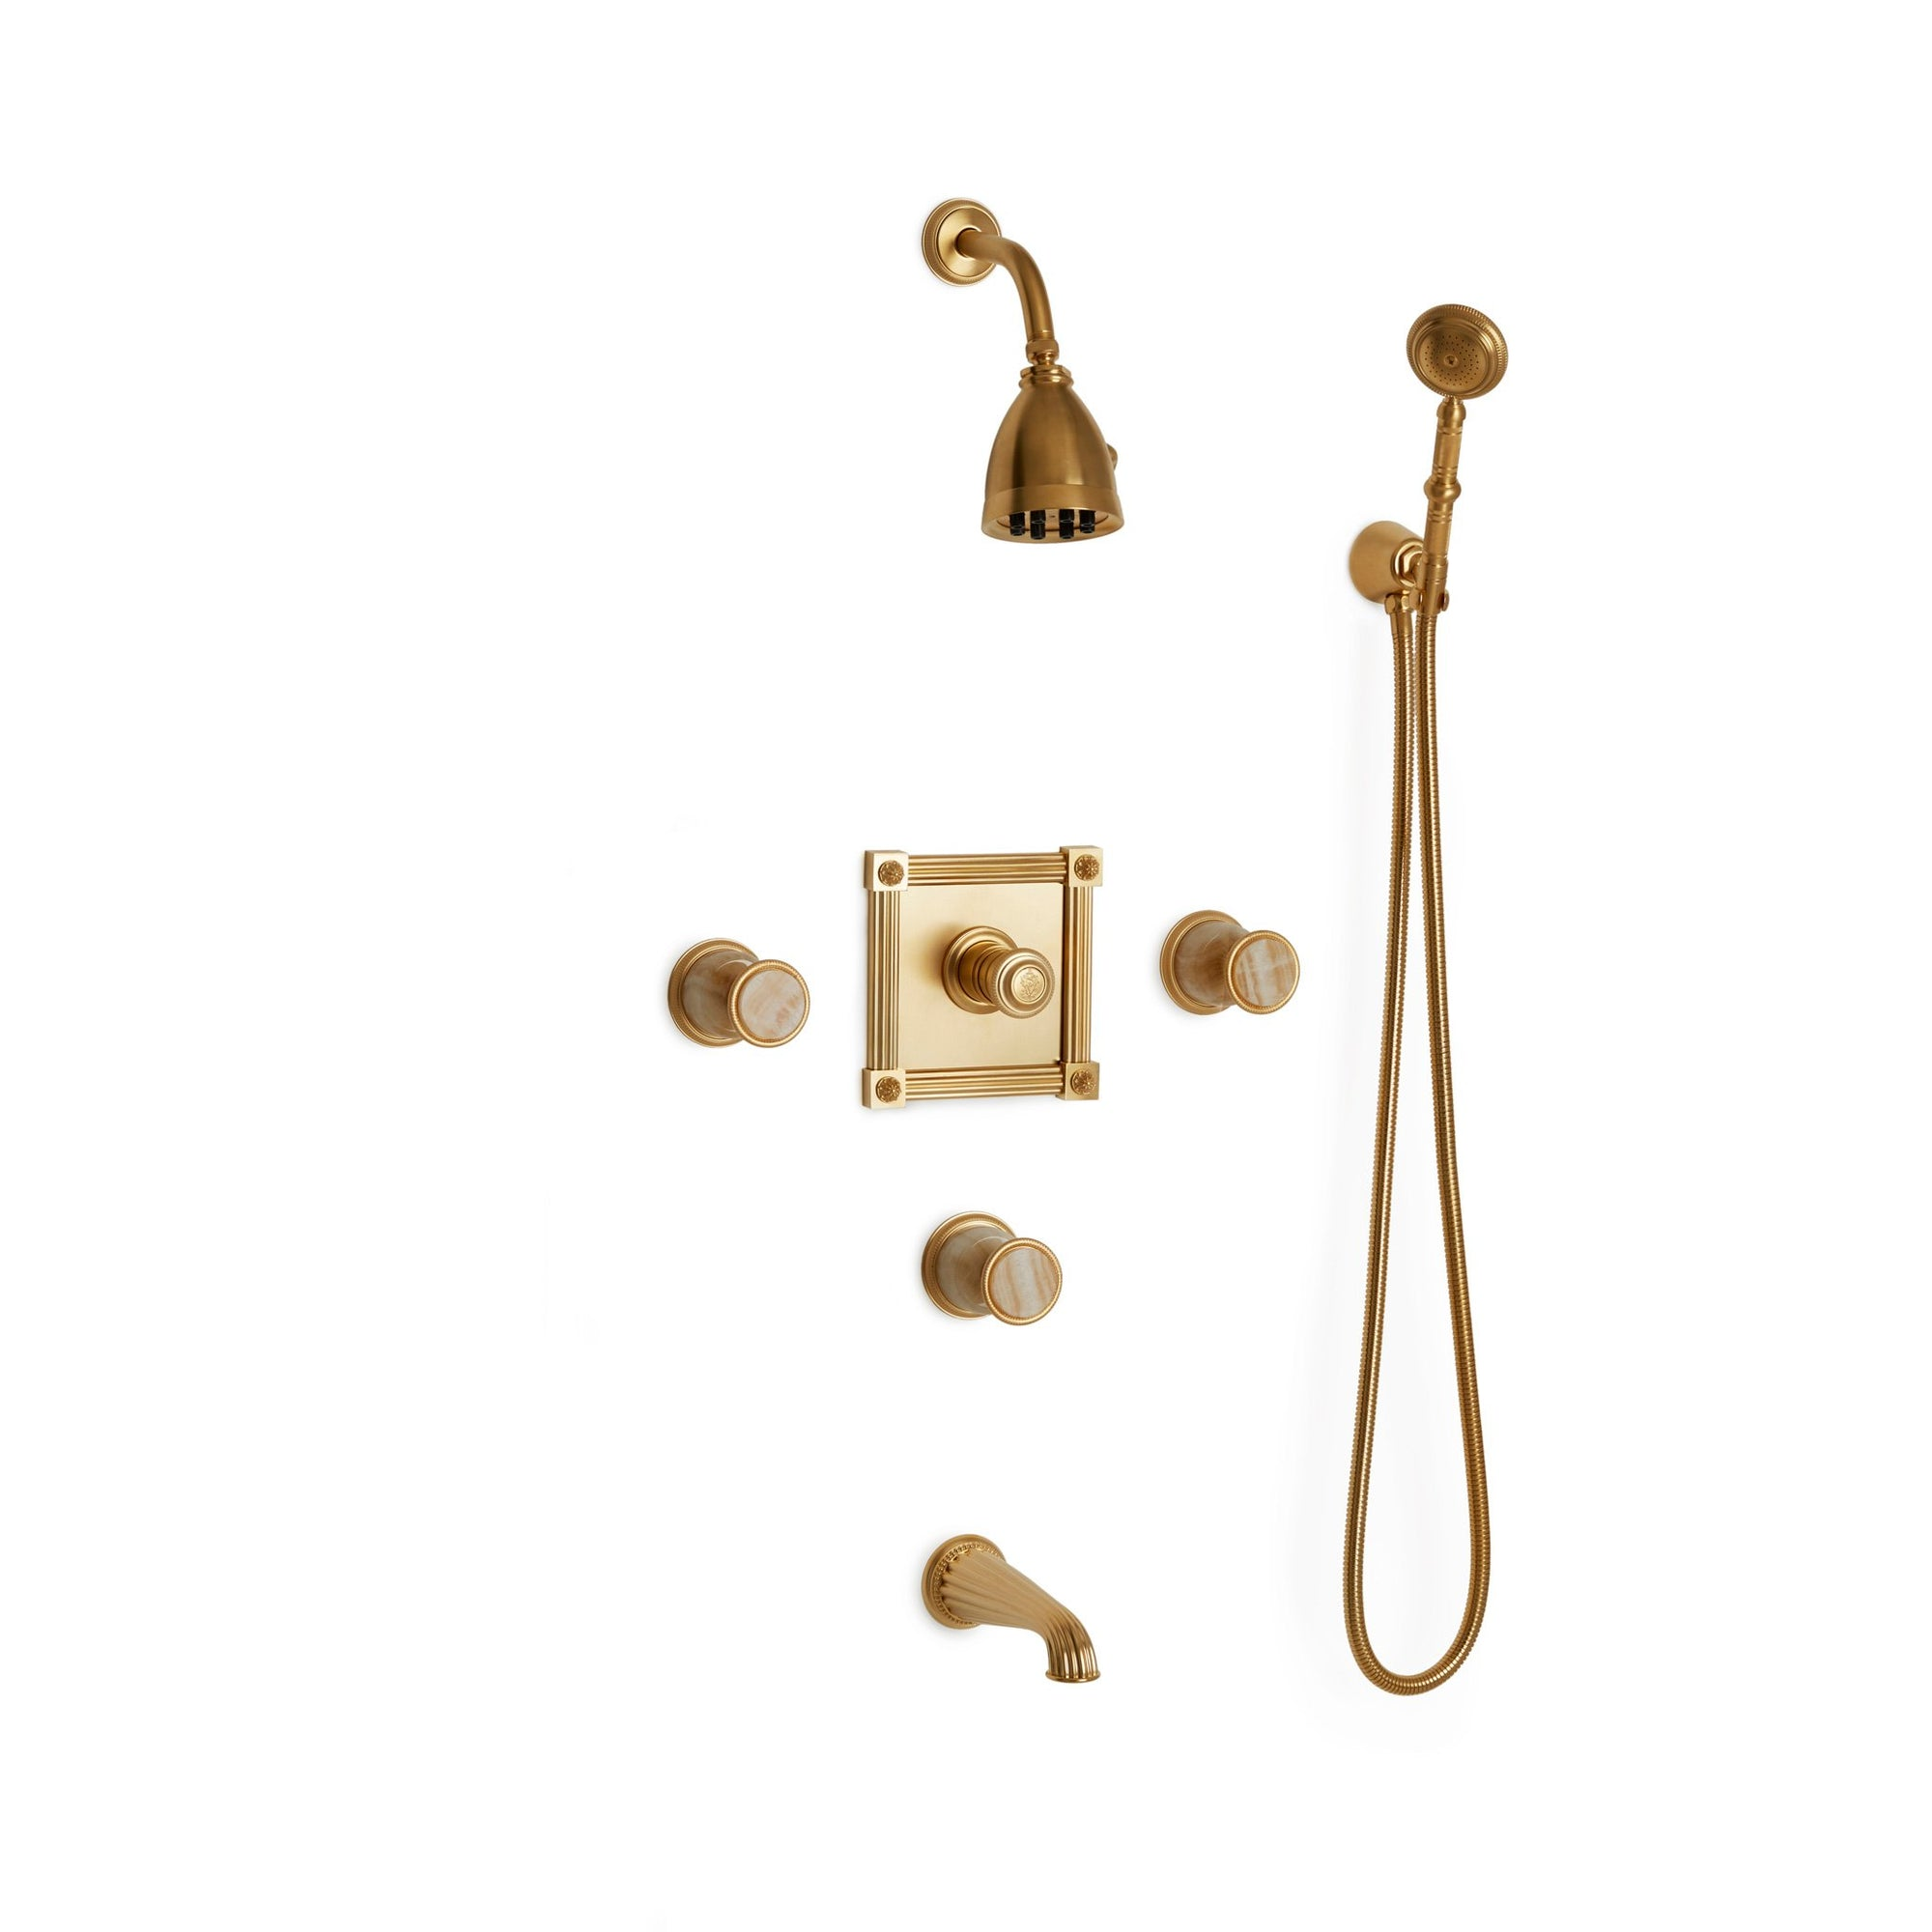 Sherle Wagner International Stone Knurled High Flow Thermostatic Shower and Tub System in Gold Plate metal finish with Honey Onyx inserts